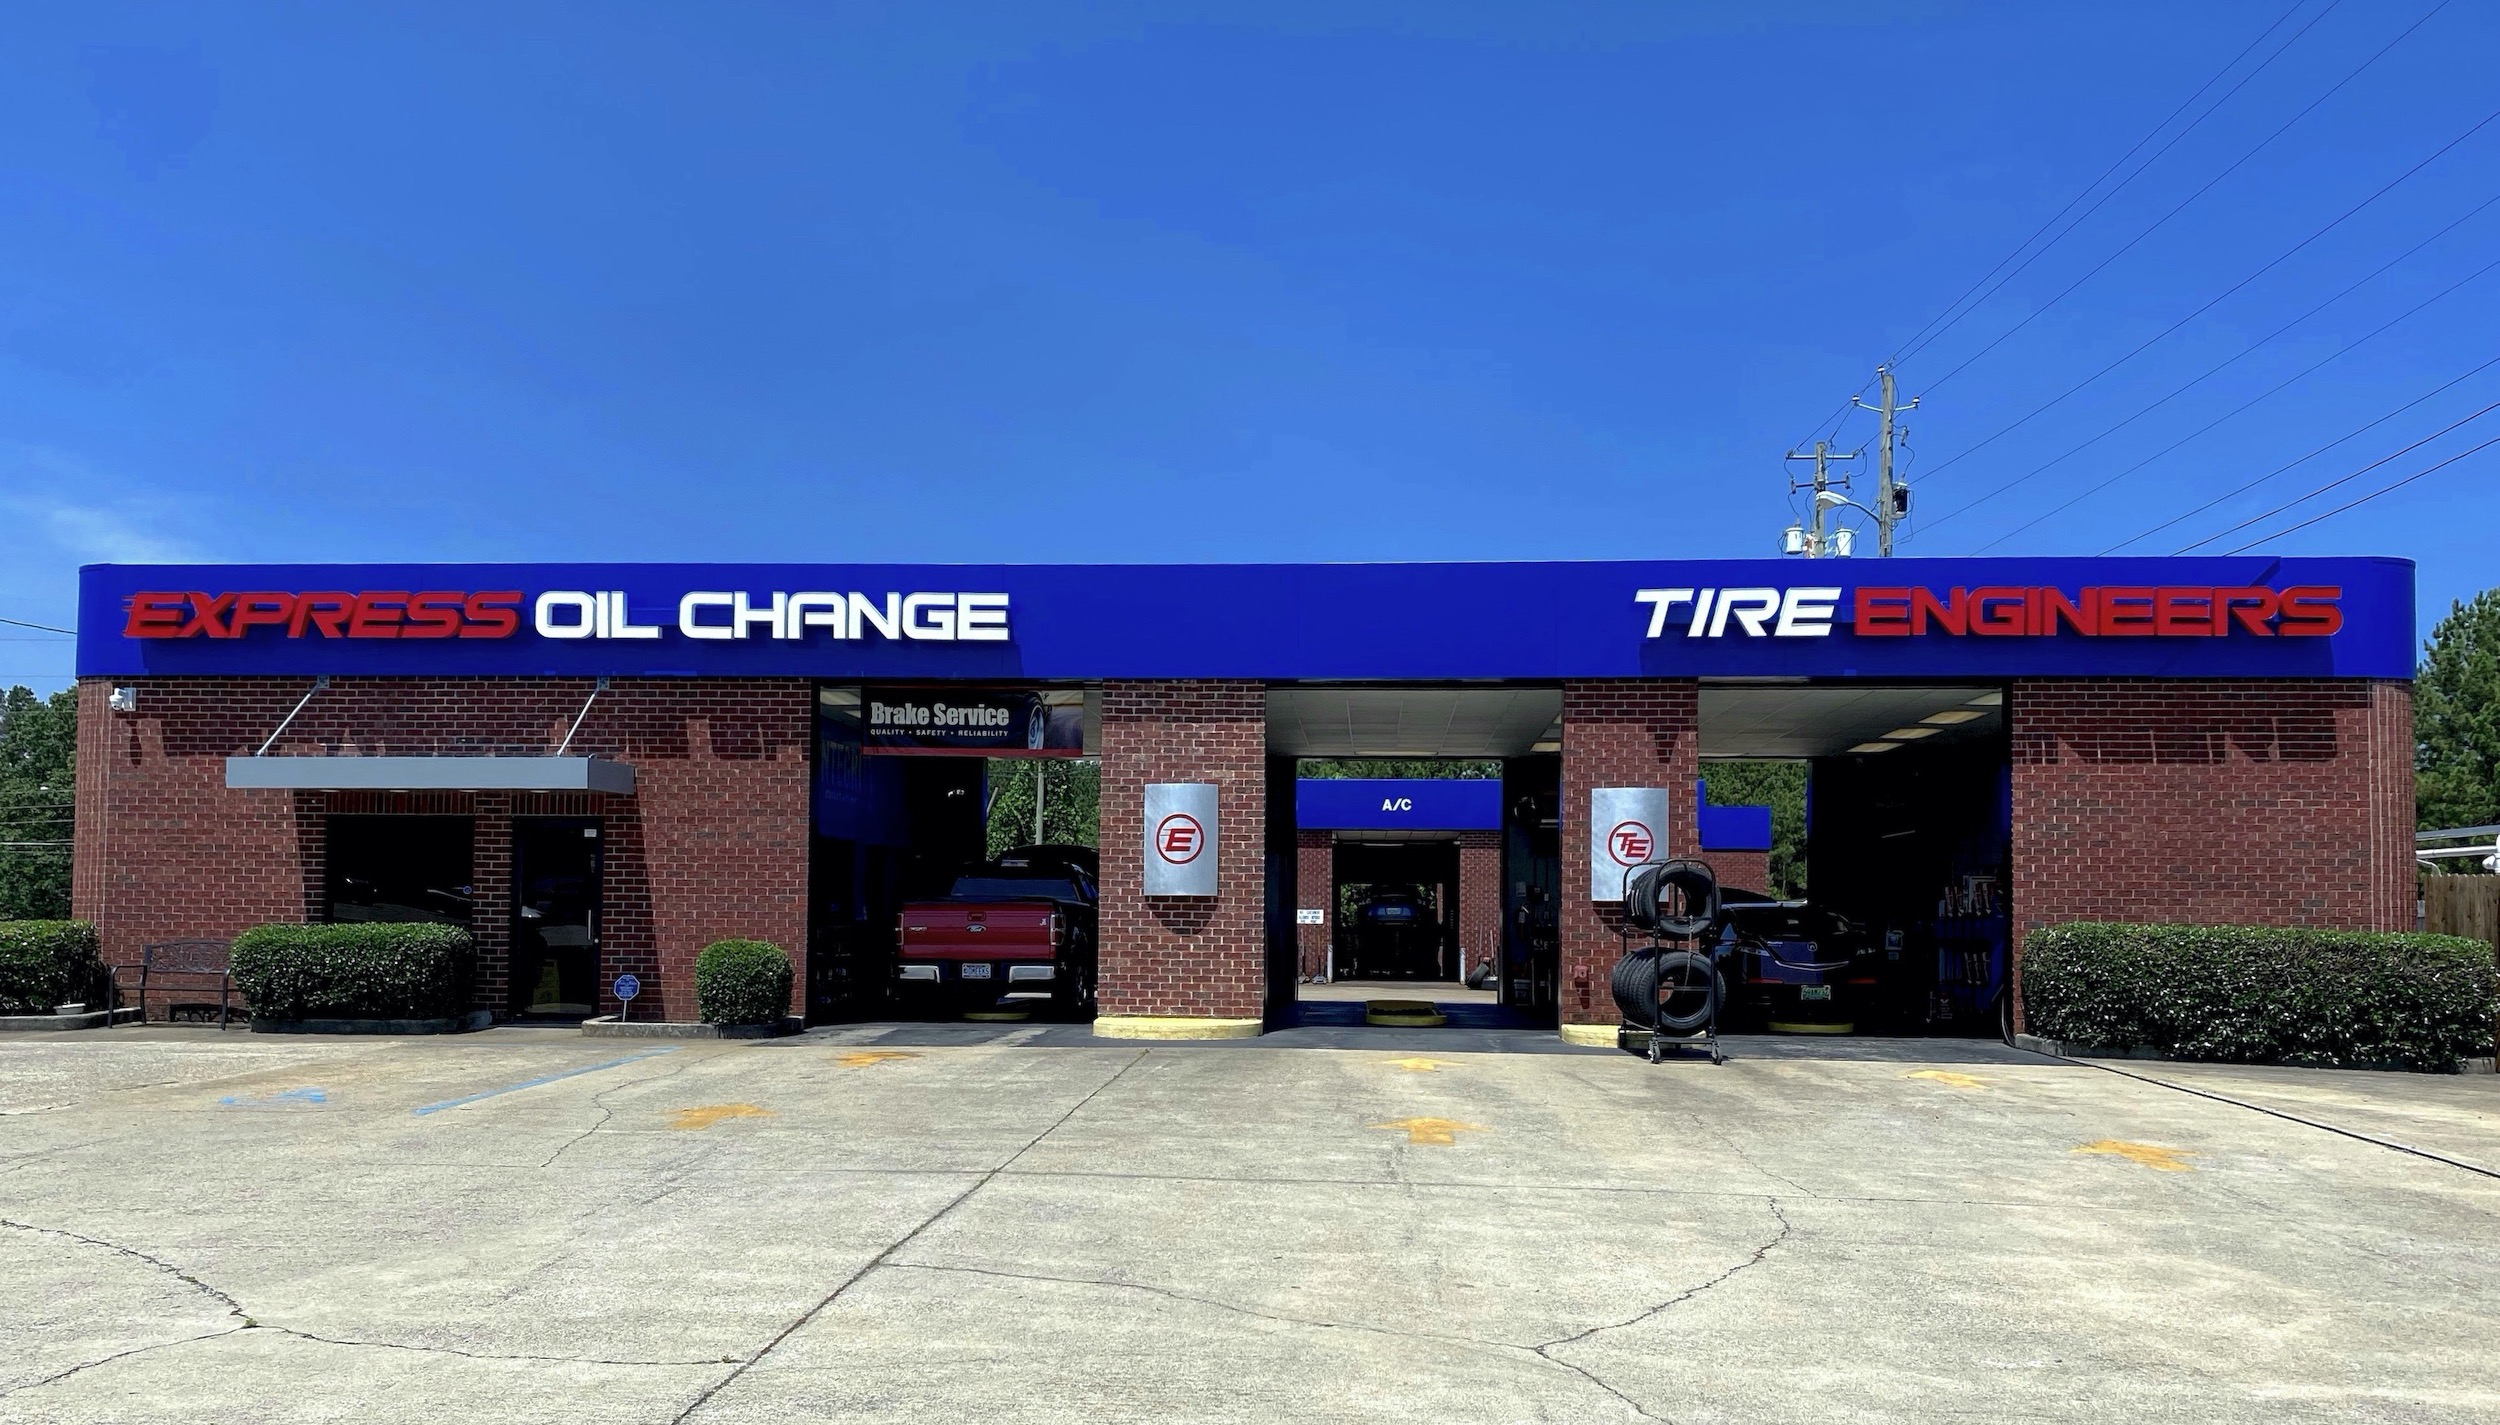 Express Oil Change & Tire Engineers at Pell City, AL - Cropwell store